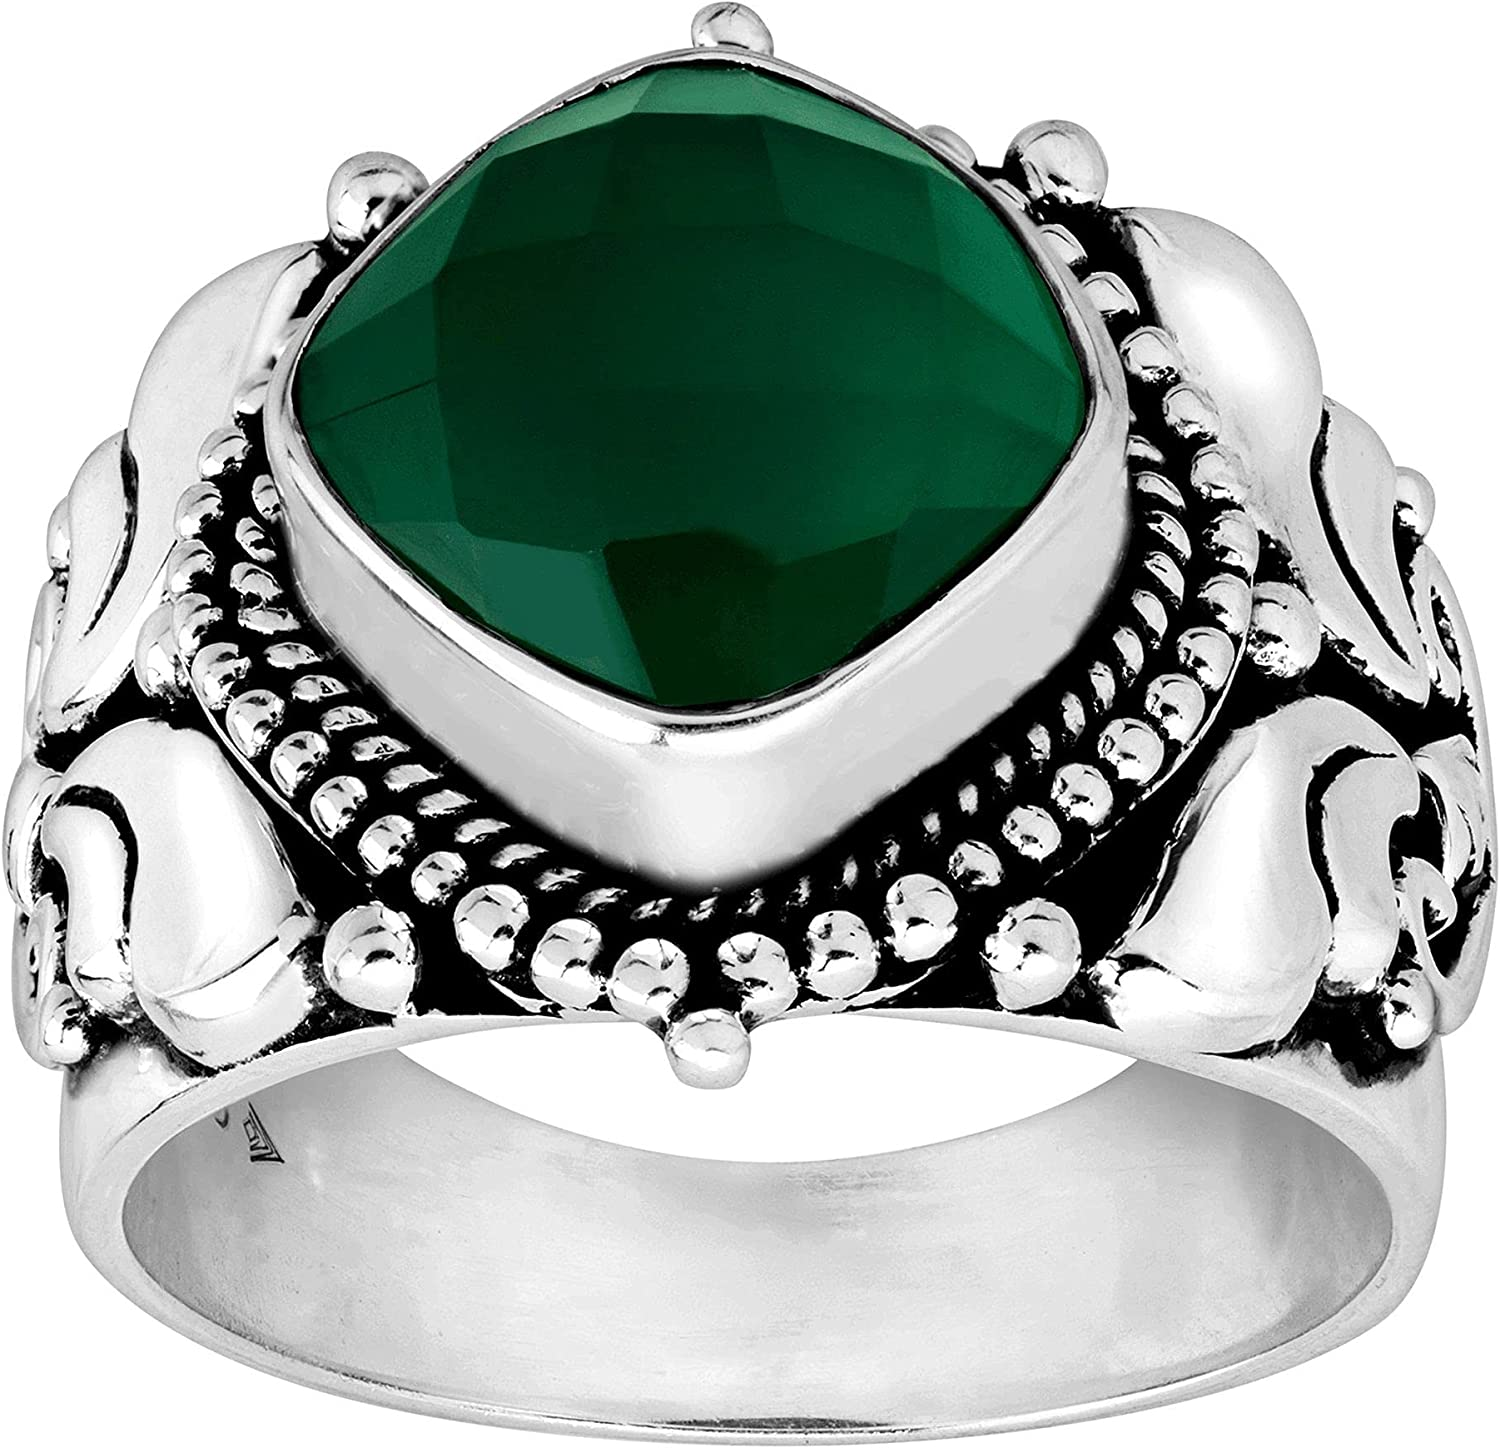 Silpada Today's only 'Irish You Were Here' Natural Ring in Onyx Green Sterlin Popularity